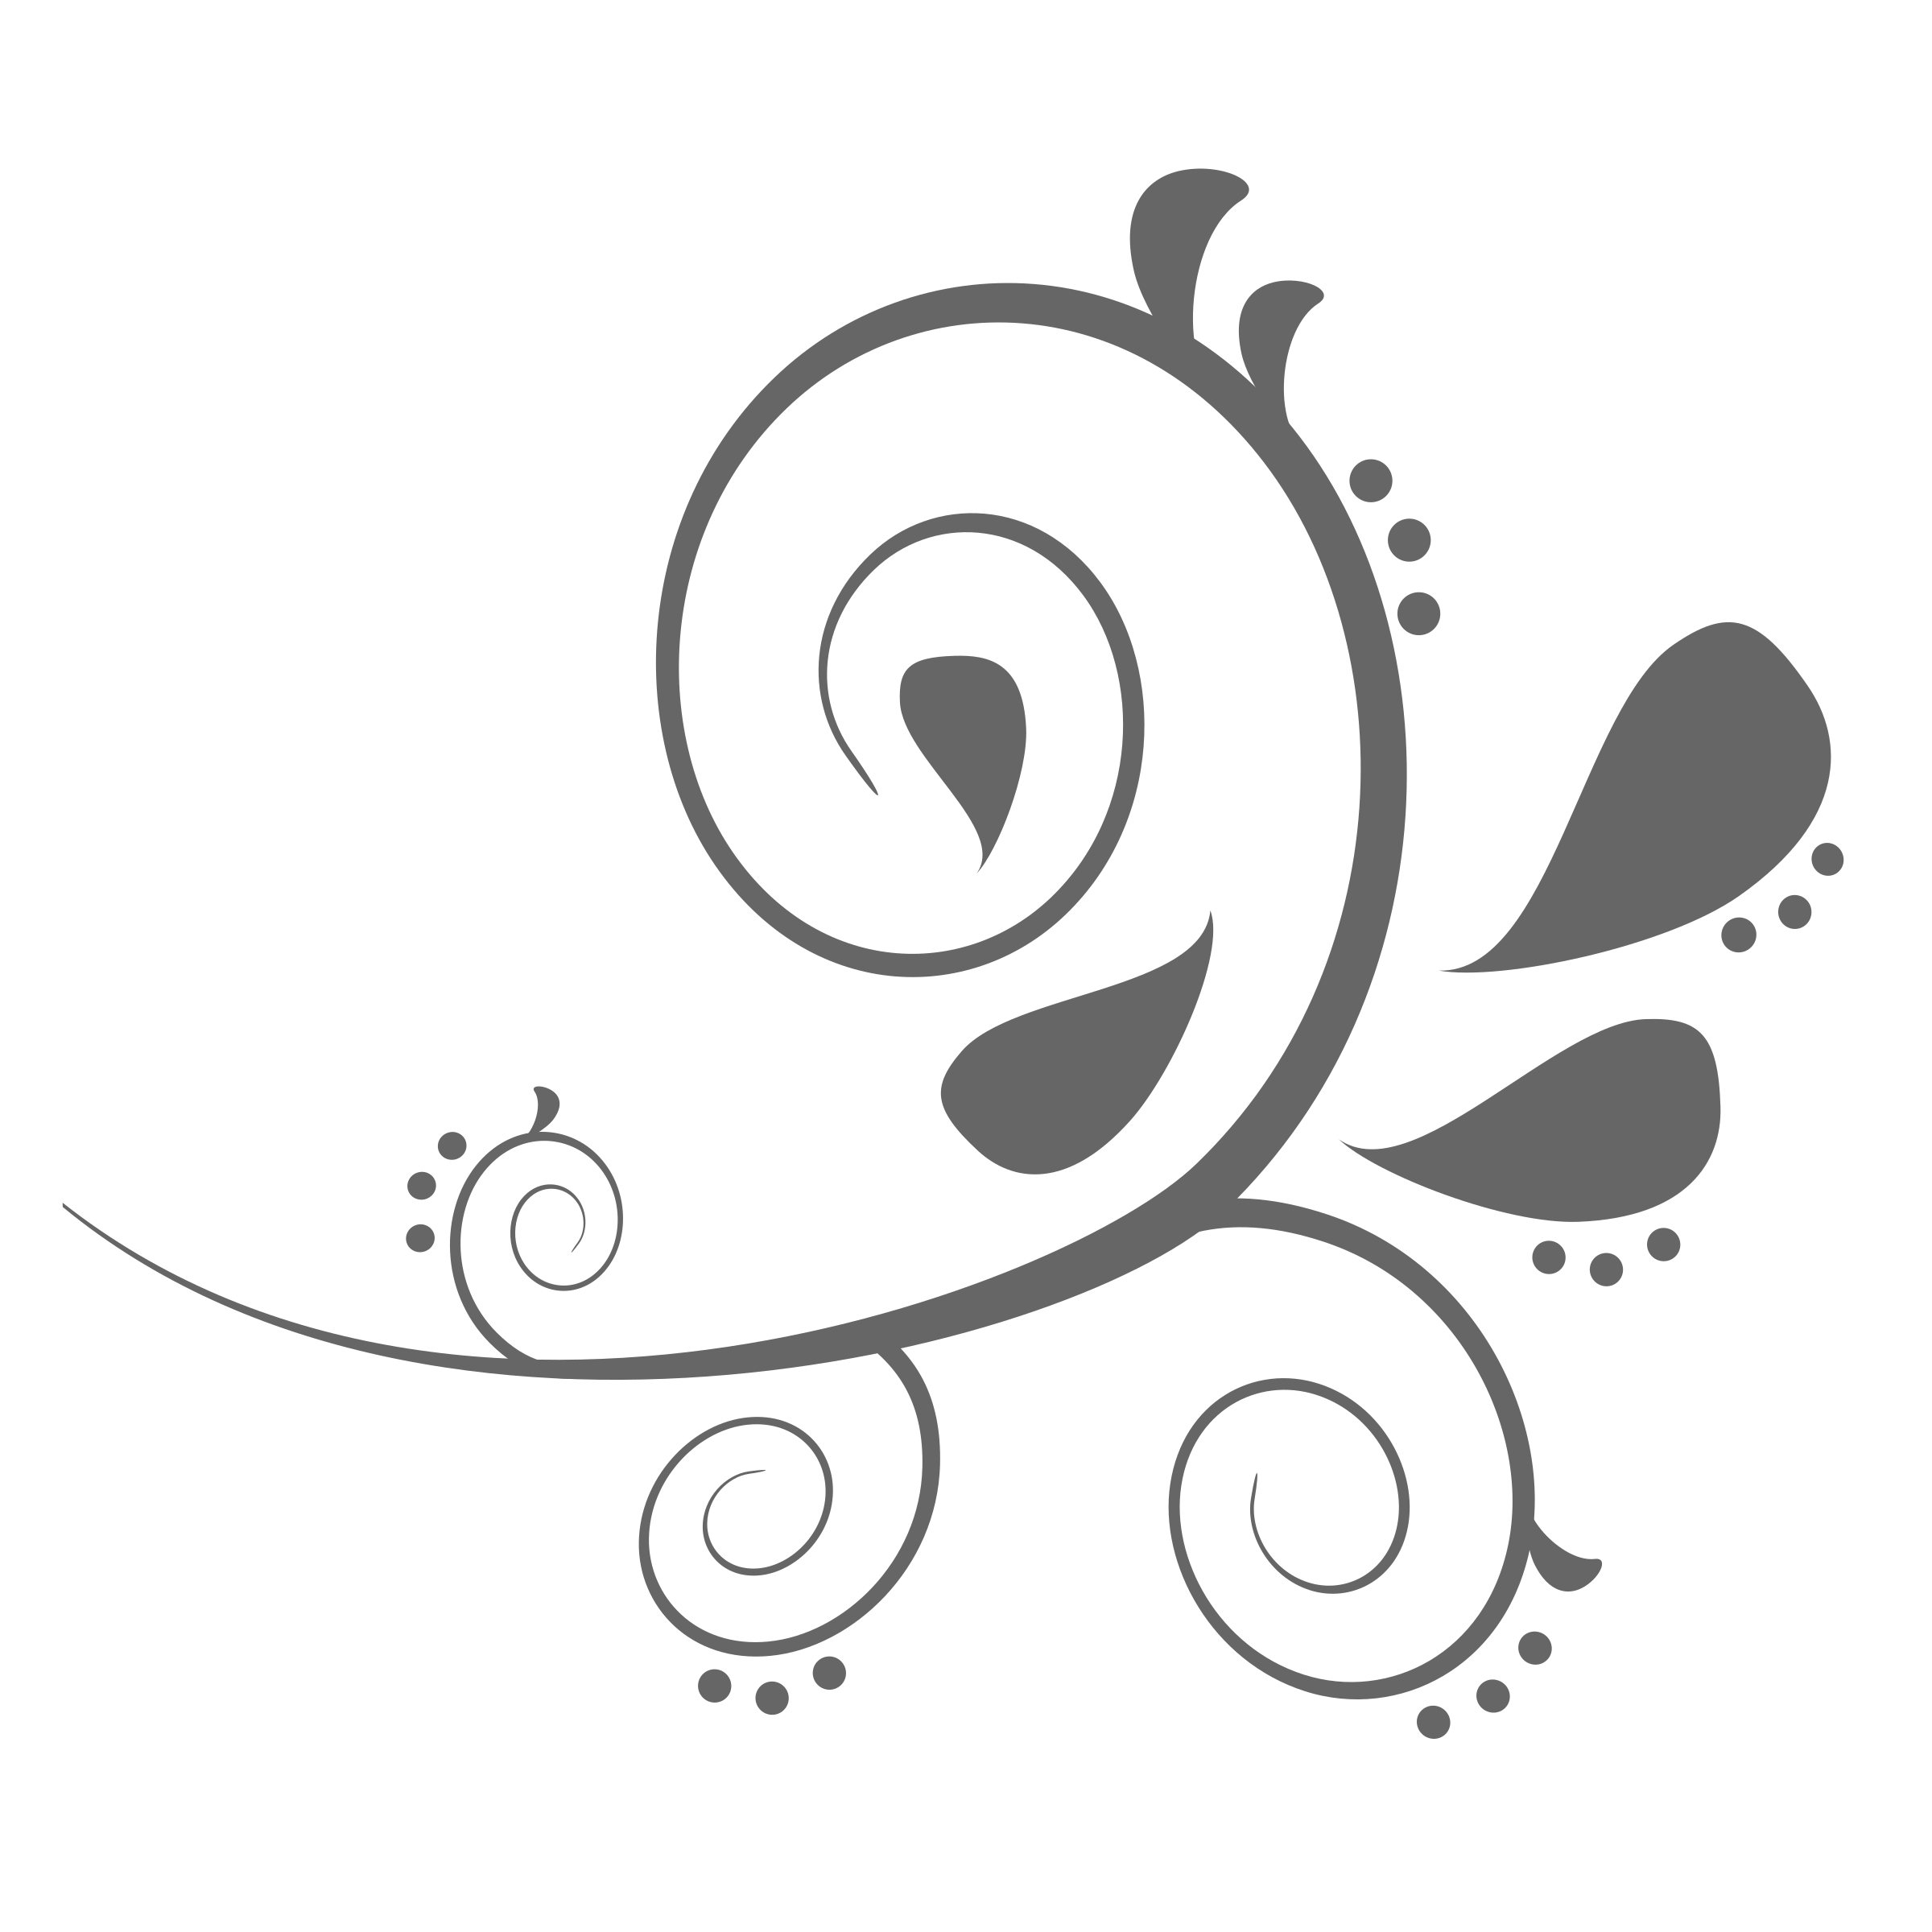 image black and white download Curves big image png. Paisley clipart paisley pattern